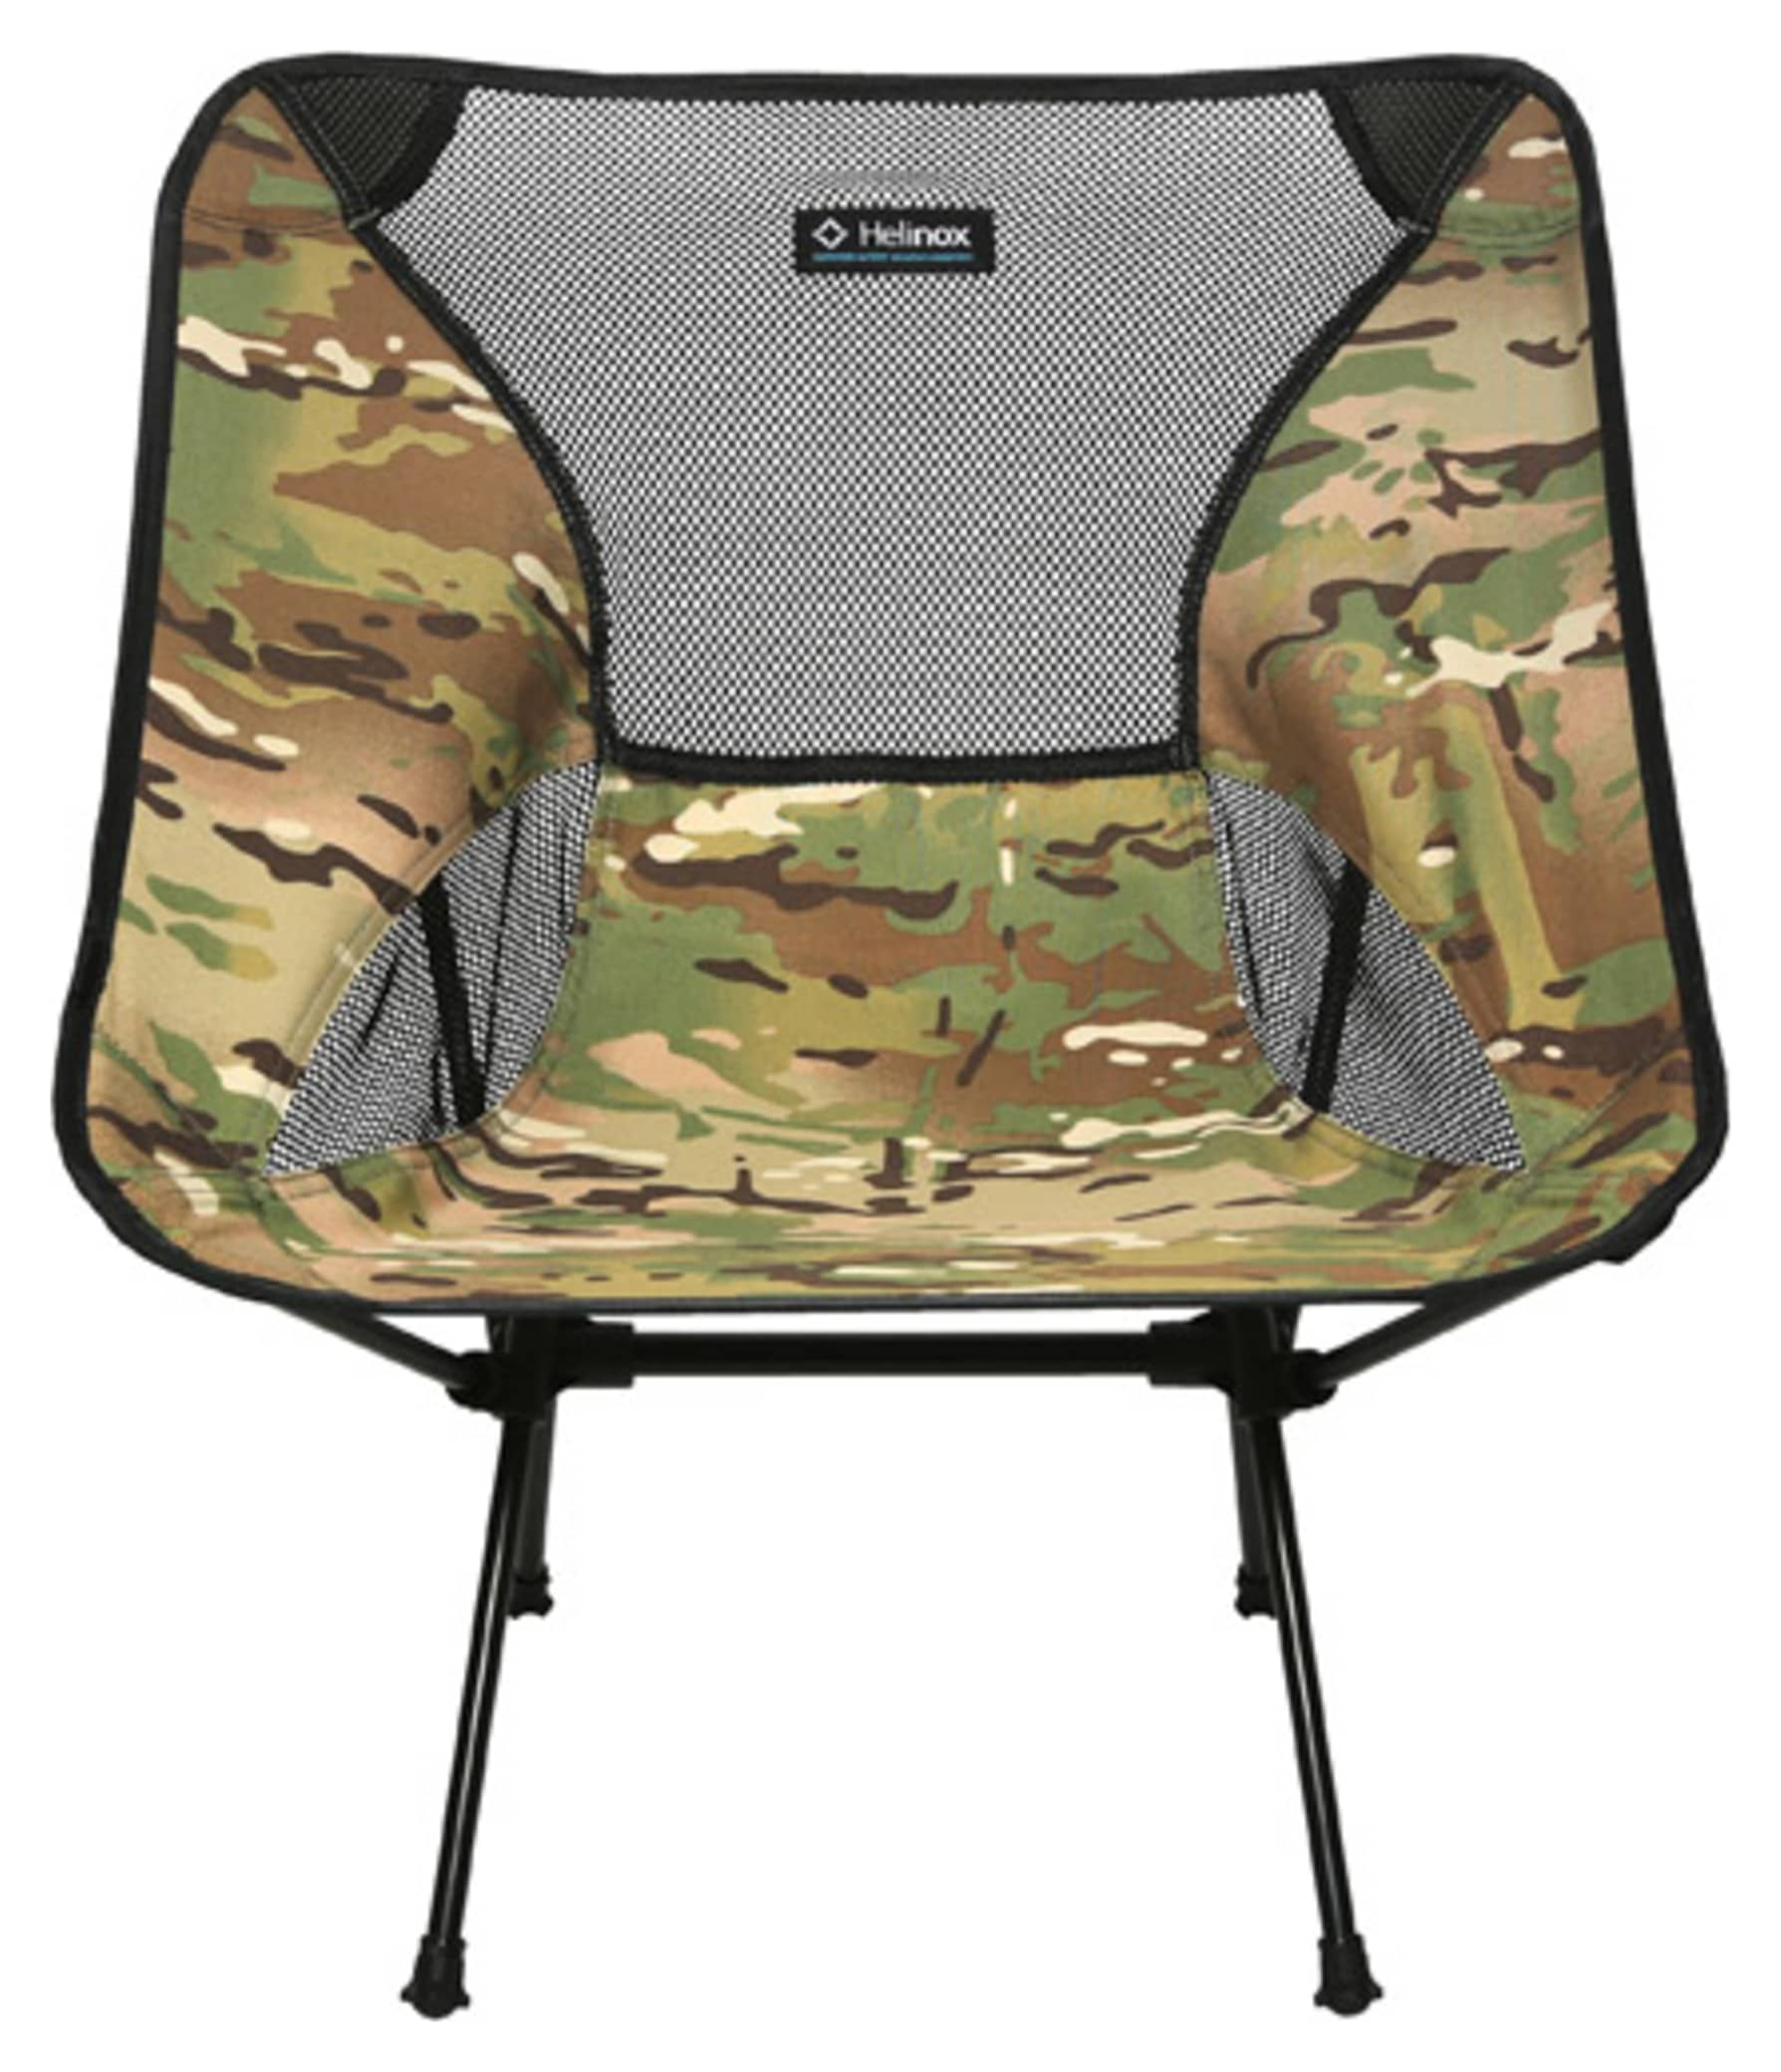 Camo Folding Chair Helinox Camping Chair One Multicam Camo